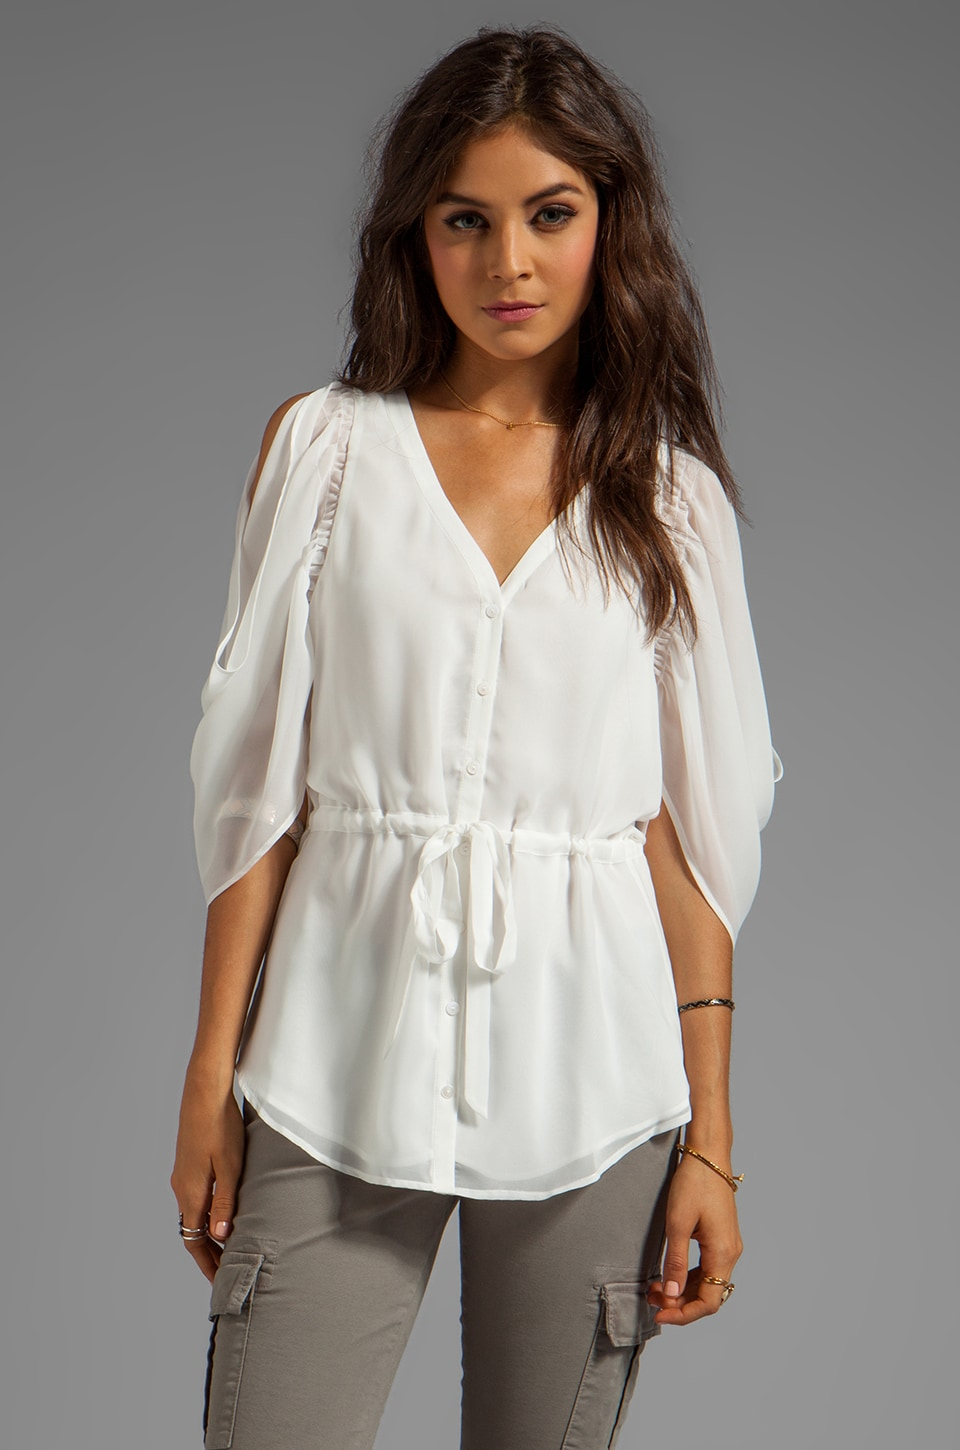 Beyond Vintage Jules Cold Shoulder Top in Ivory